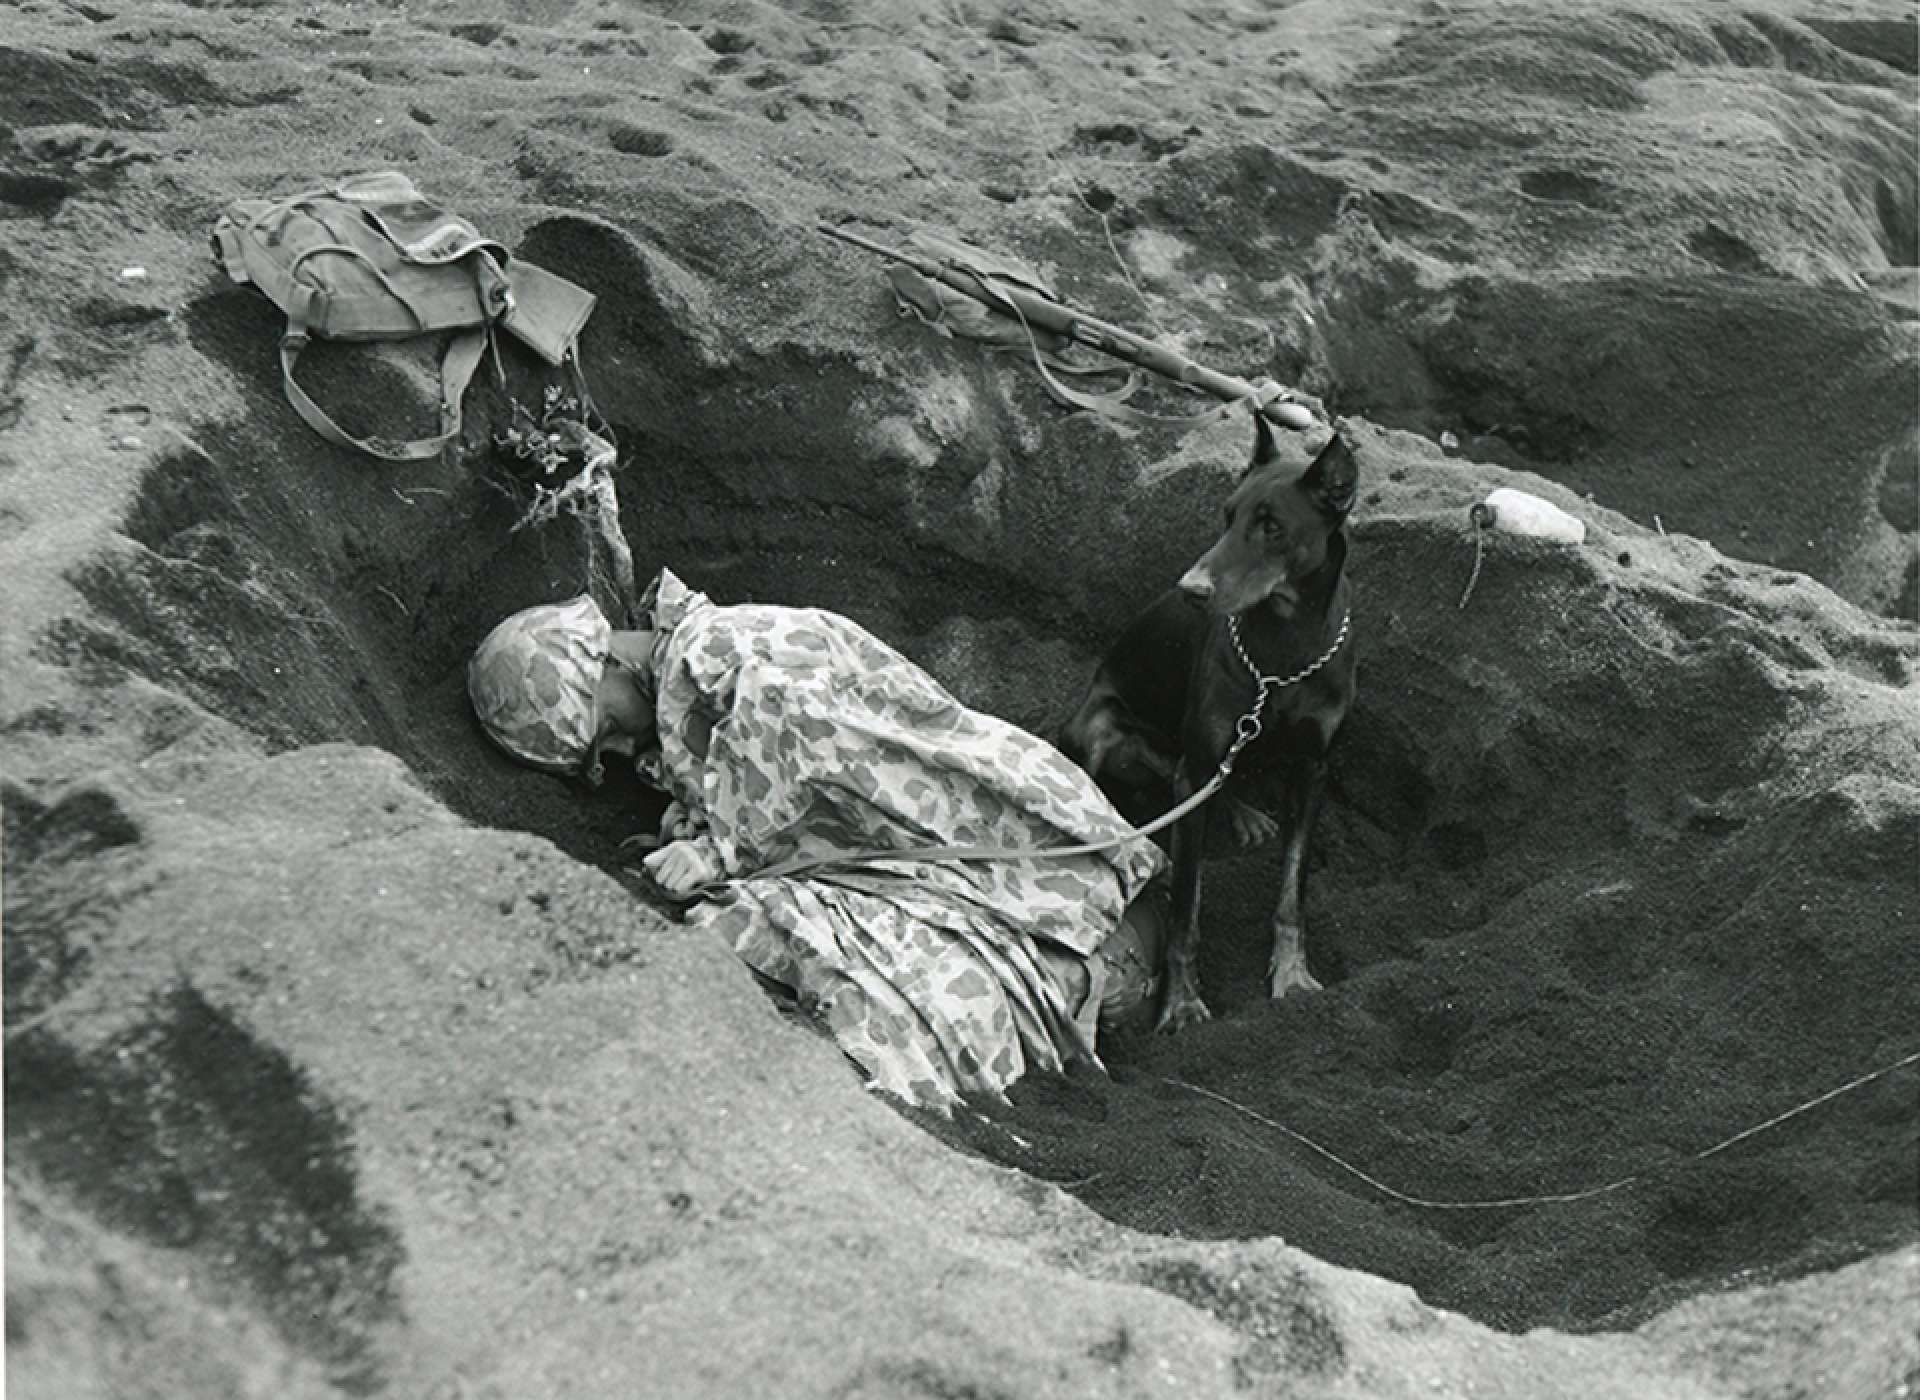 Pfc. Rez P. Hester of the U.S. Marine Corps' 7th War Dog Platoon on Iwo Jima takes a nap while Butch stands guard. Trained and sent into battle together, war dogs and their partners developed mutual loyalty, protectiveness, and love. National Archives photo.